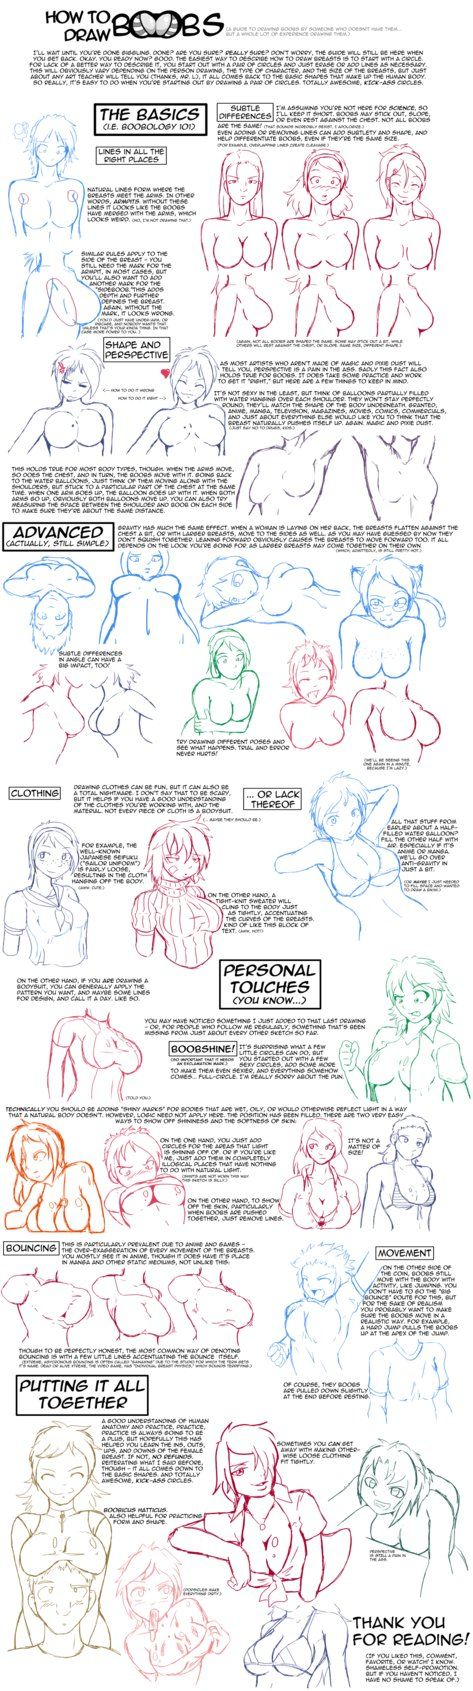 it's scary how easy it is to find these things...  How to Draw Boobs by…